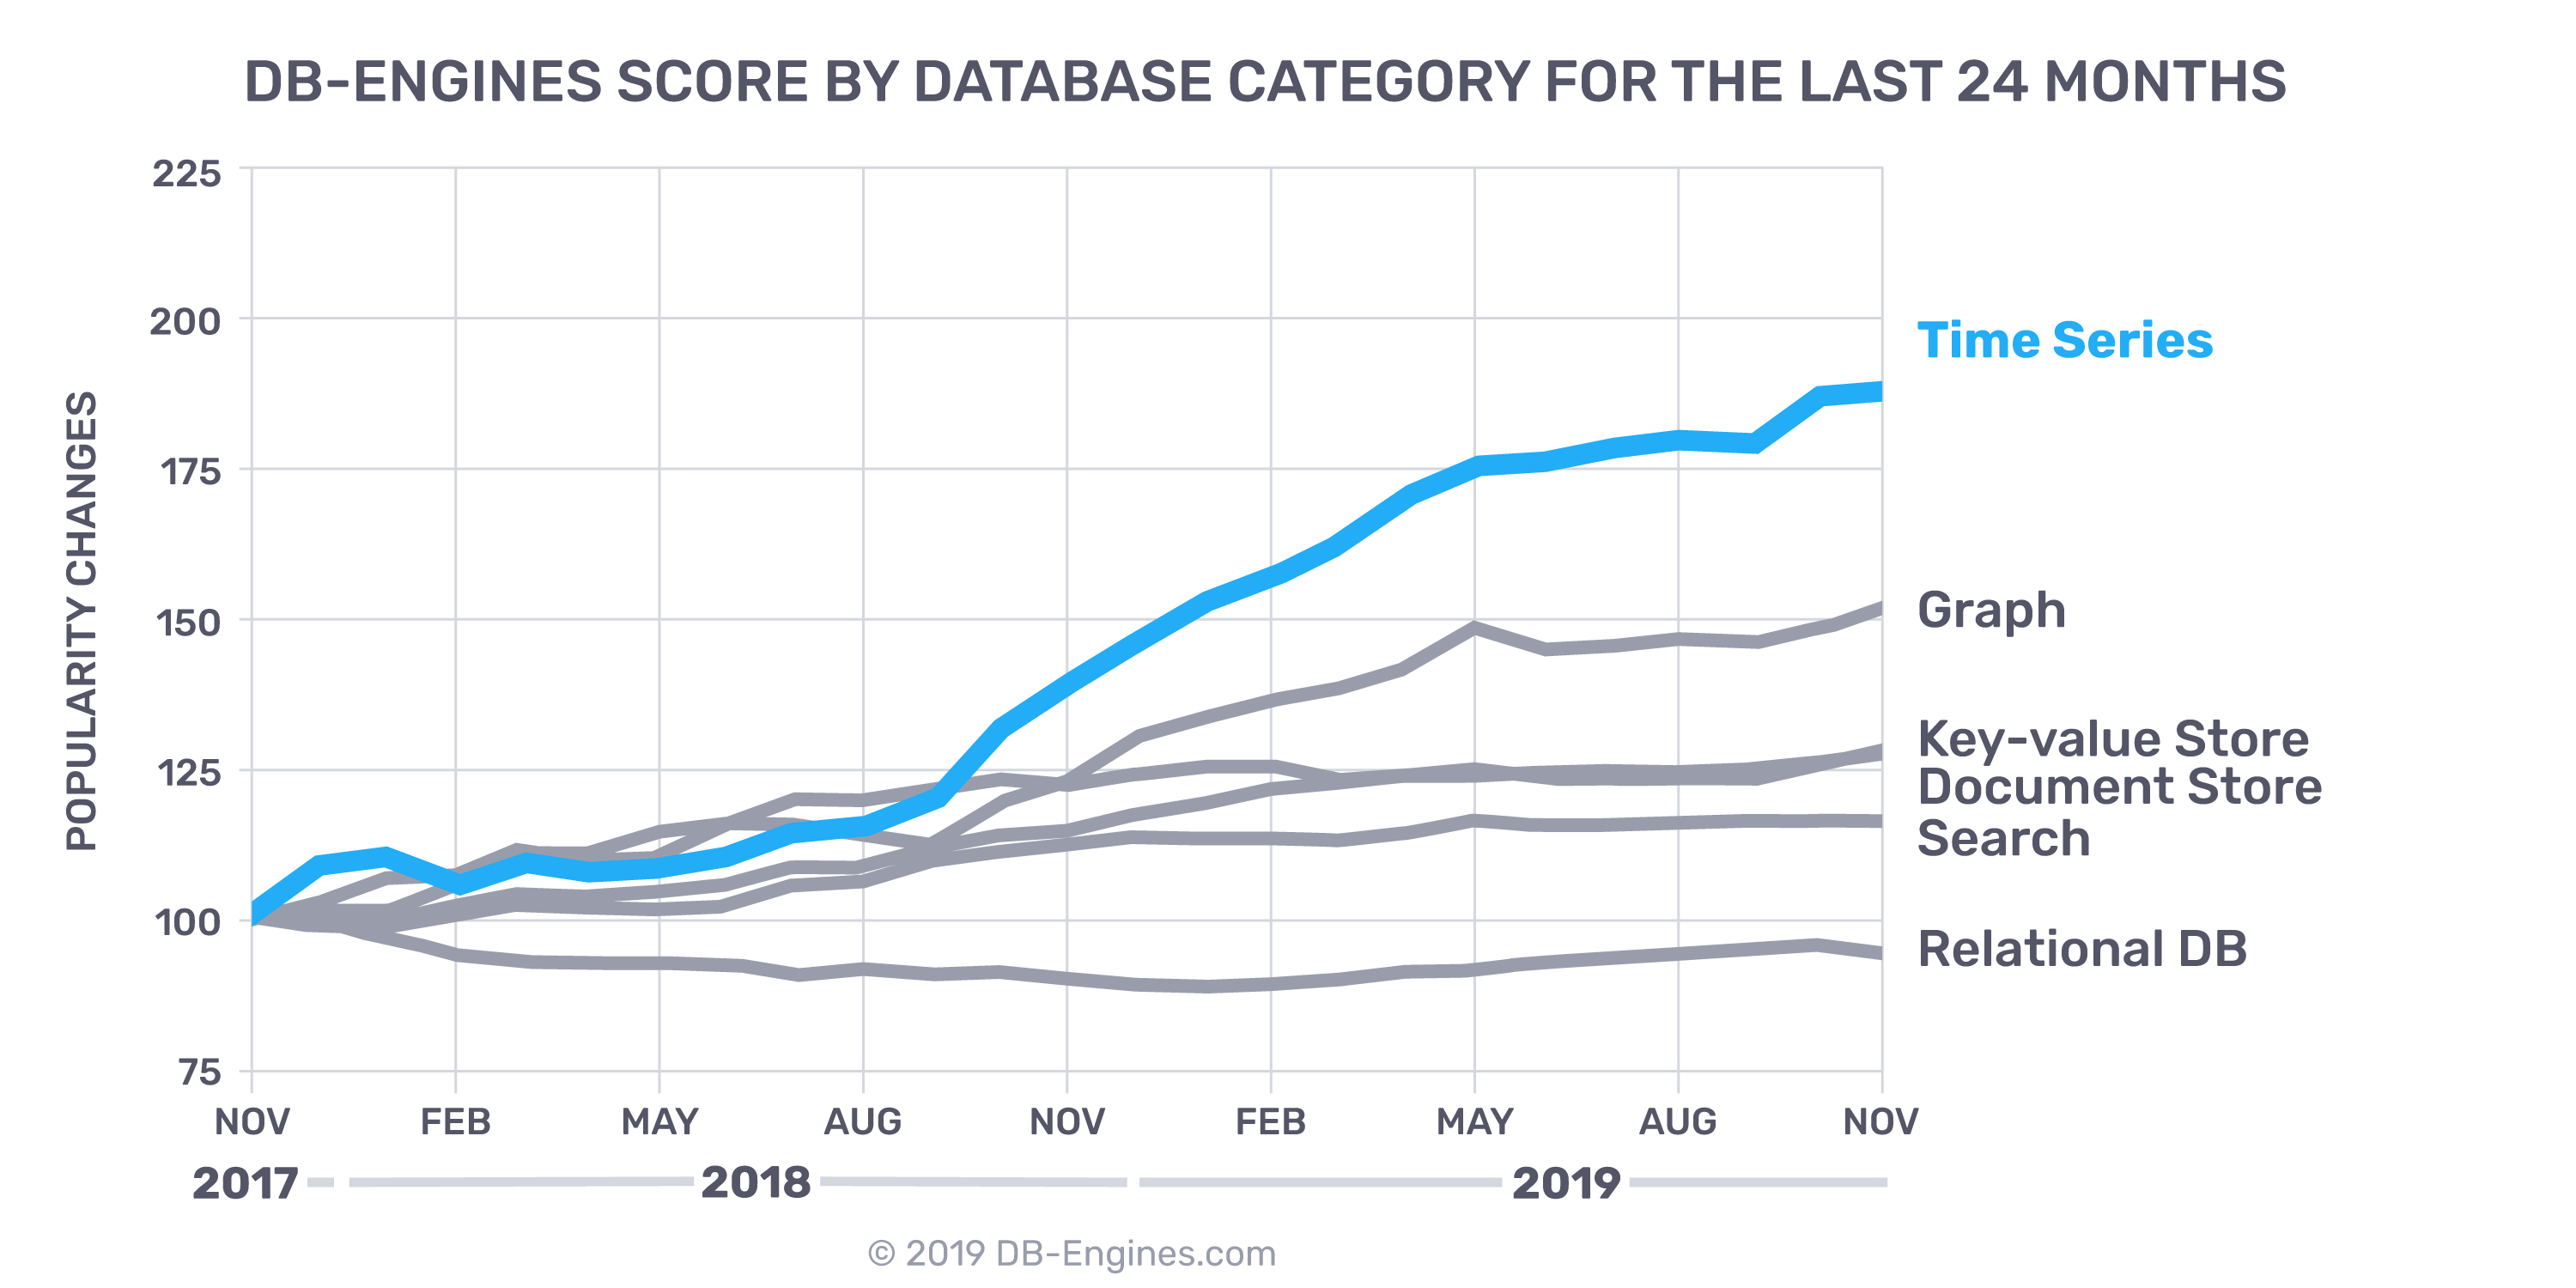 trend of time series databases and other database types over 24 months